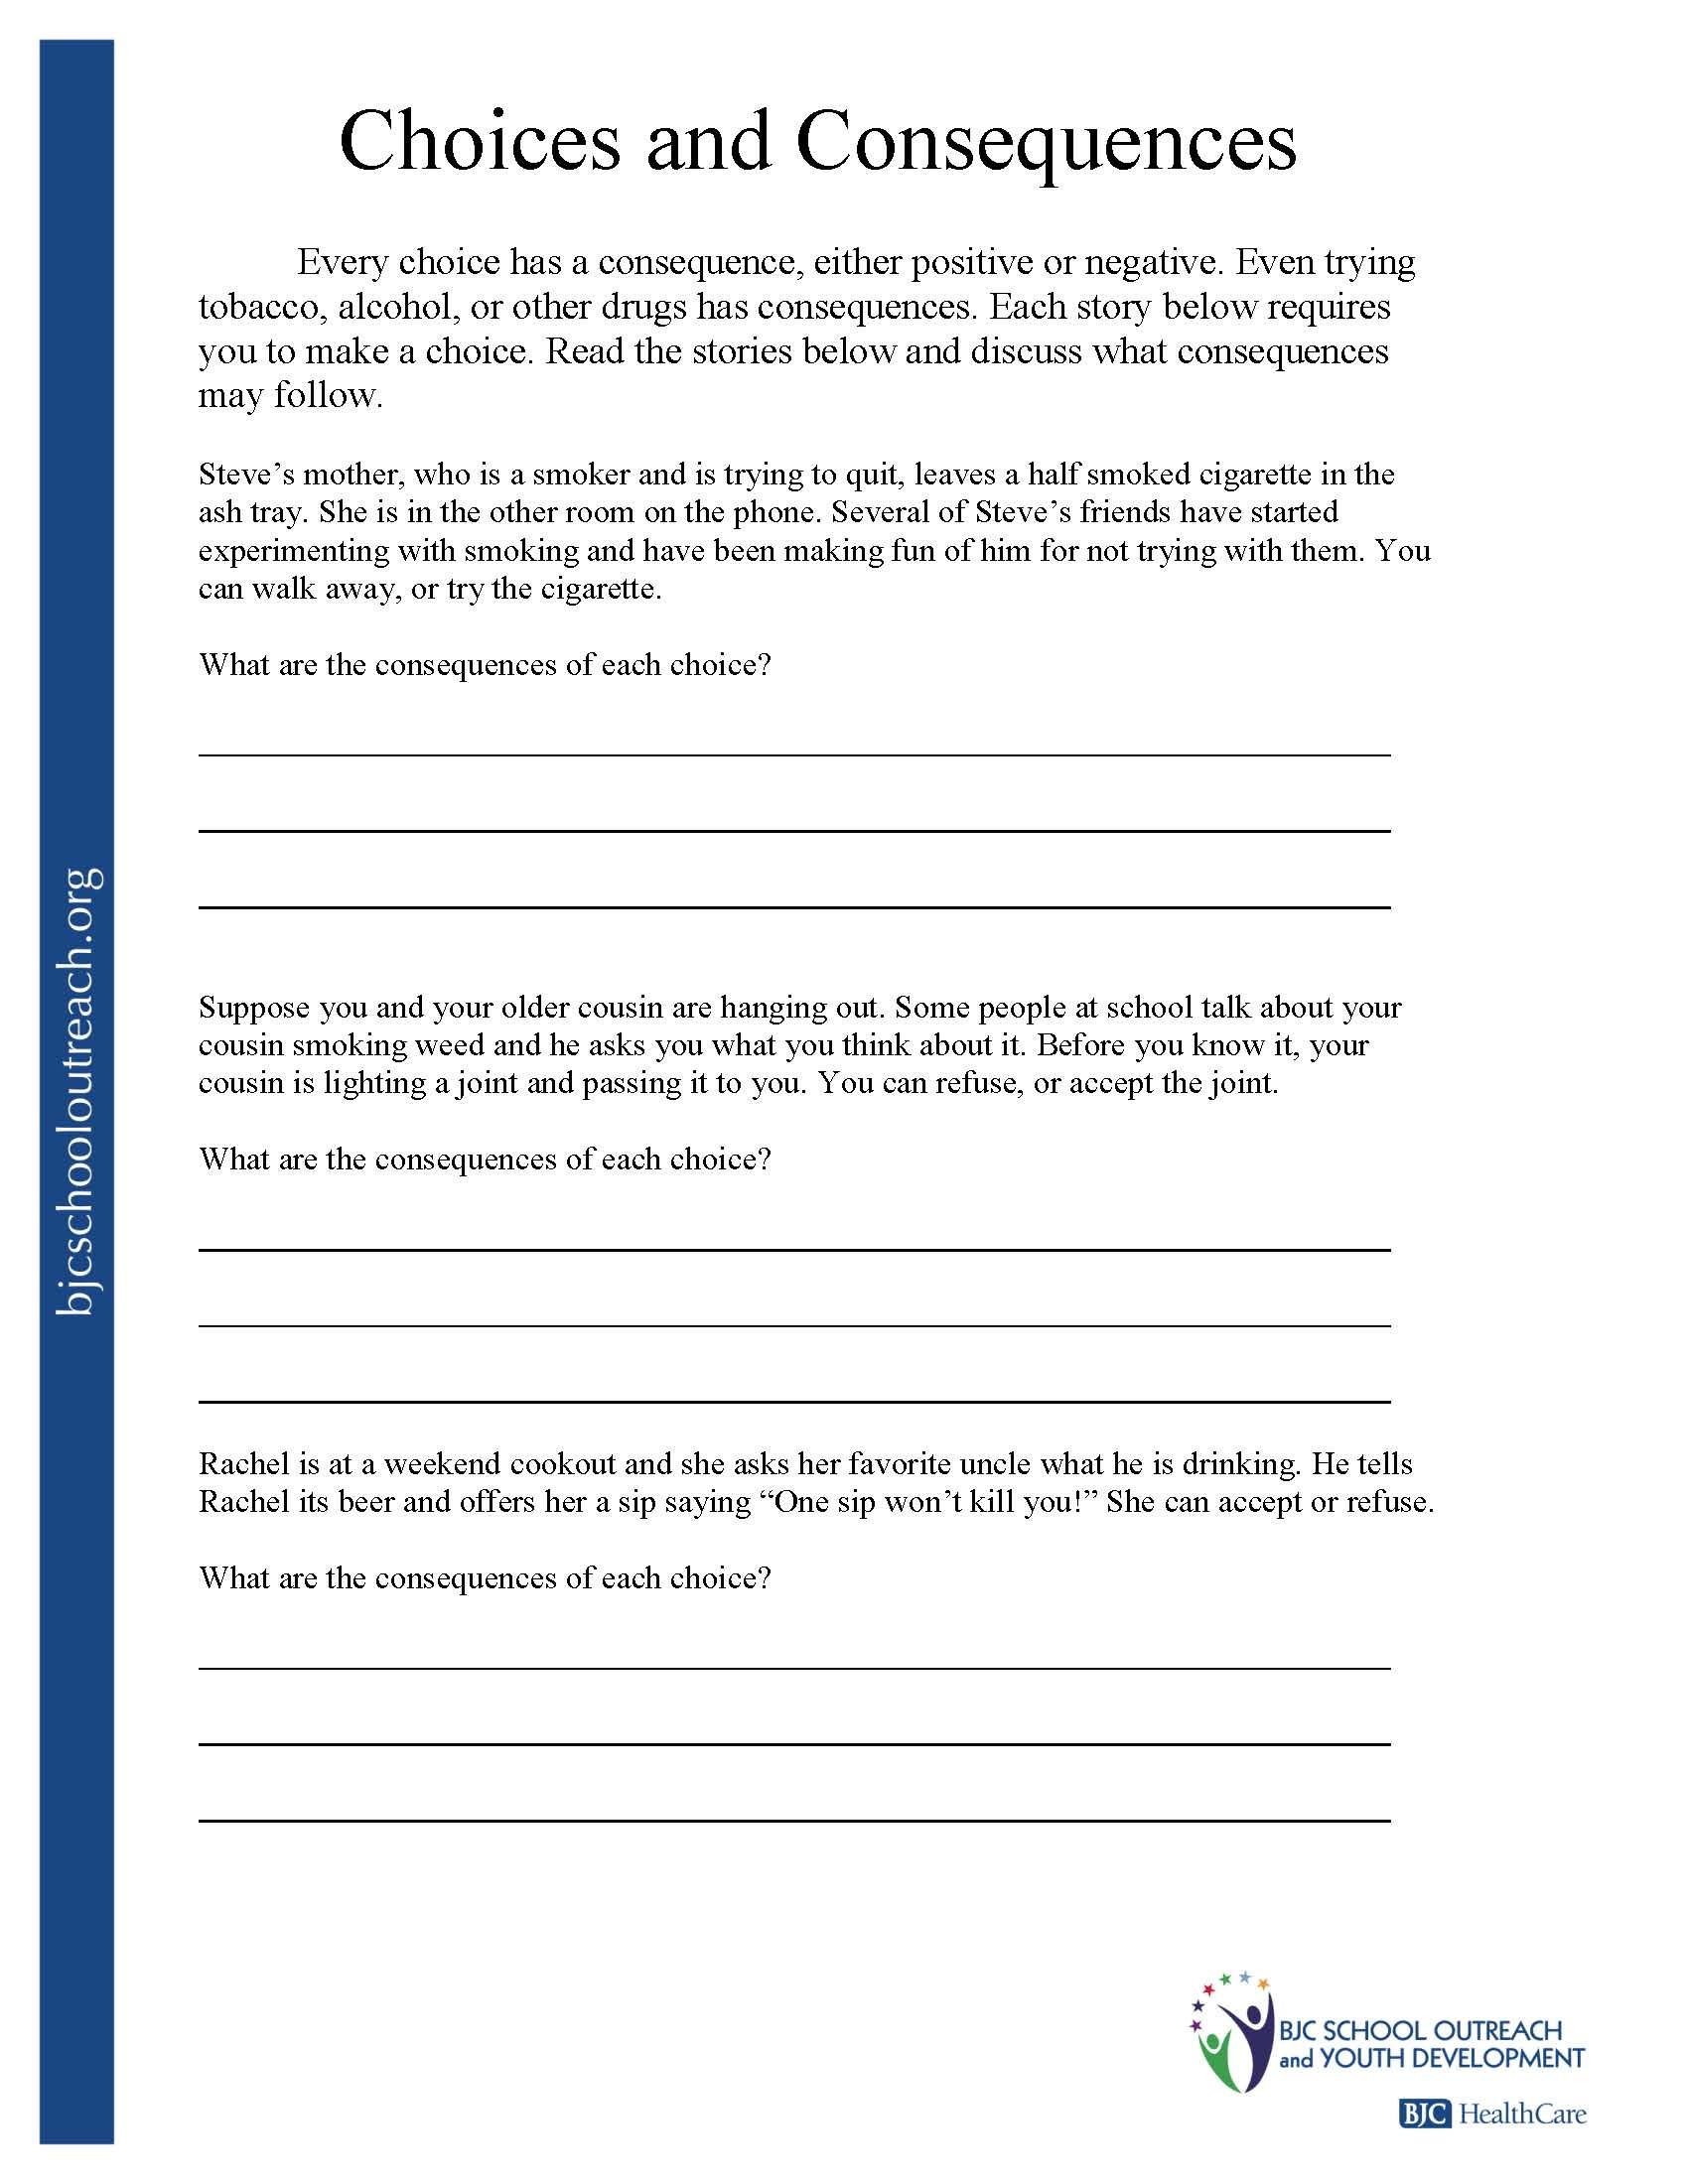 making the right choices worksheets - Google Search   Life skills lessons [ 2200 x 1700 Pixel ]